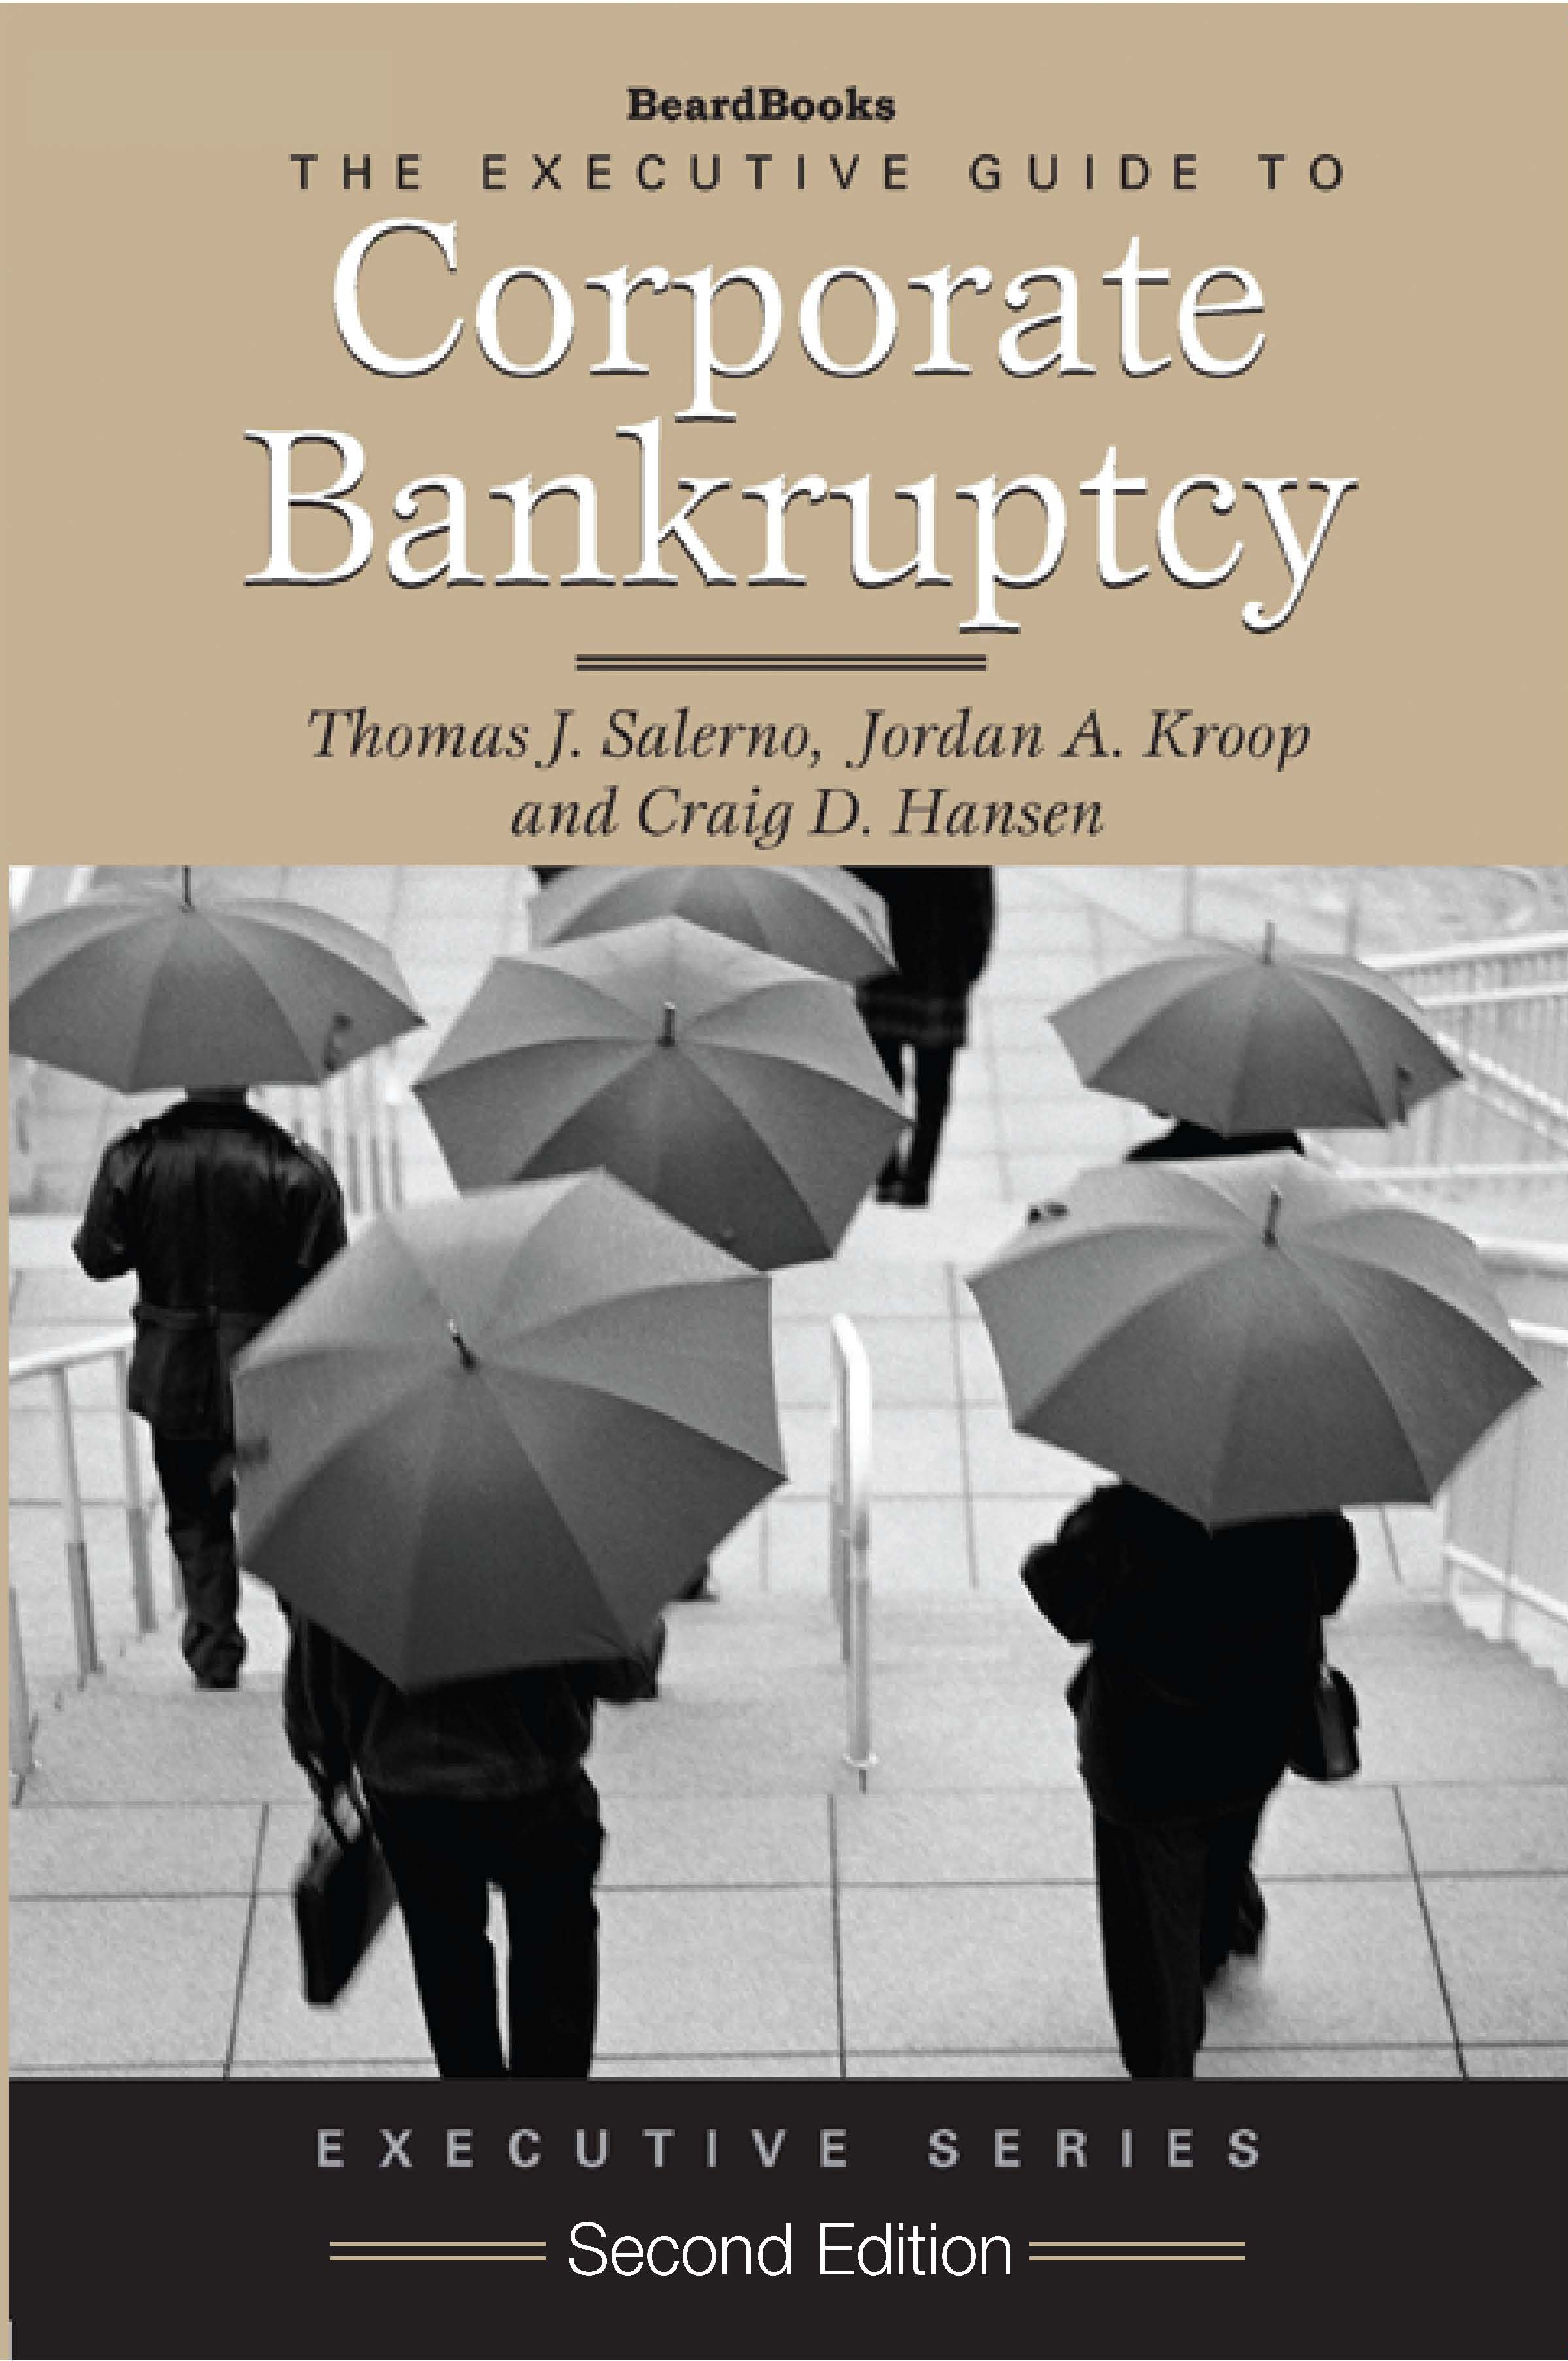 The Executive Guide to Corporate Bankruptcy Second Edition